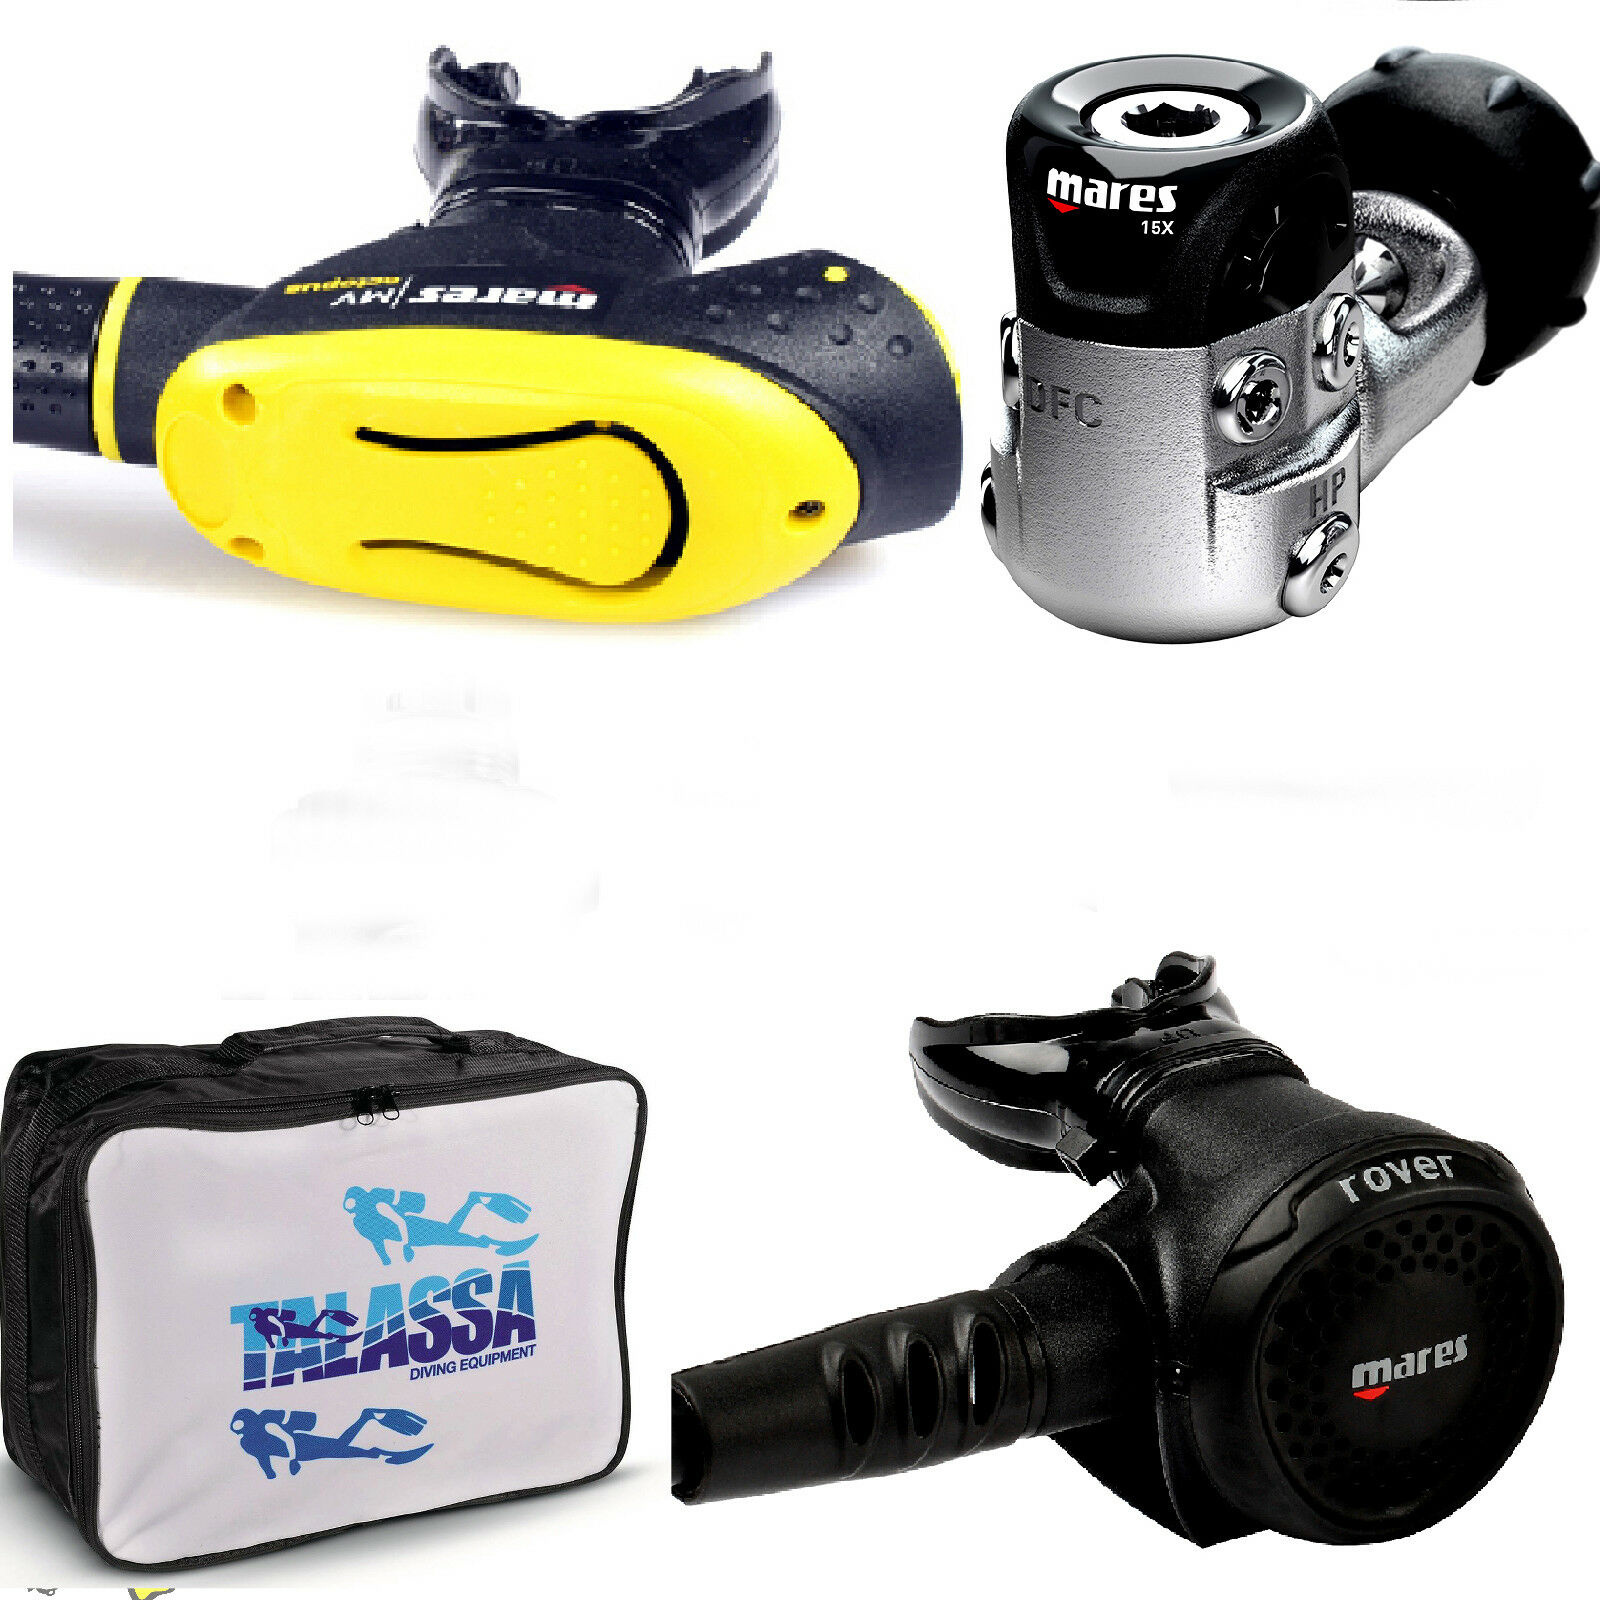 LO3 17 Mares regulator PRESTIGE 15x YOKE OCTOPUS MV AND REGULATOR BAG